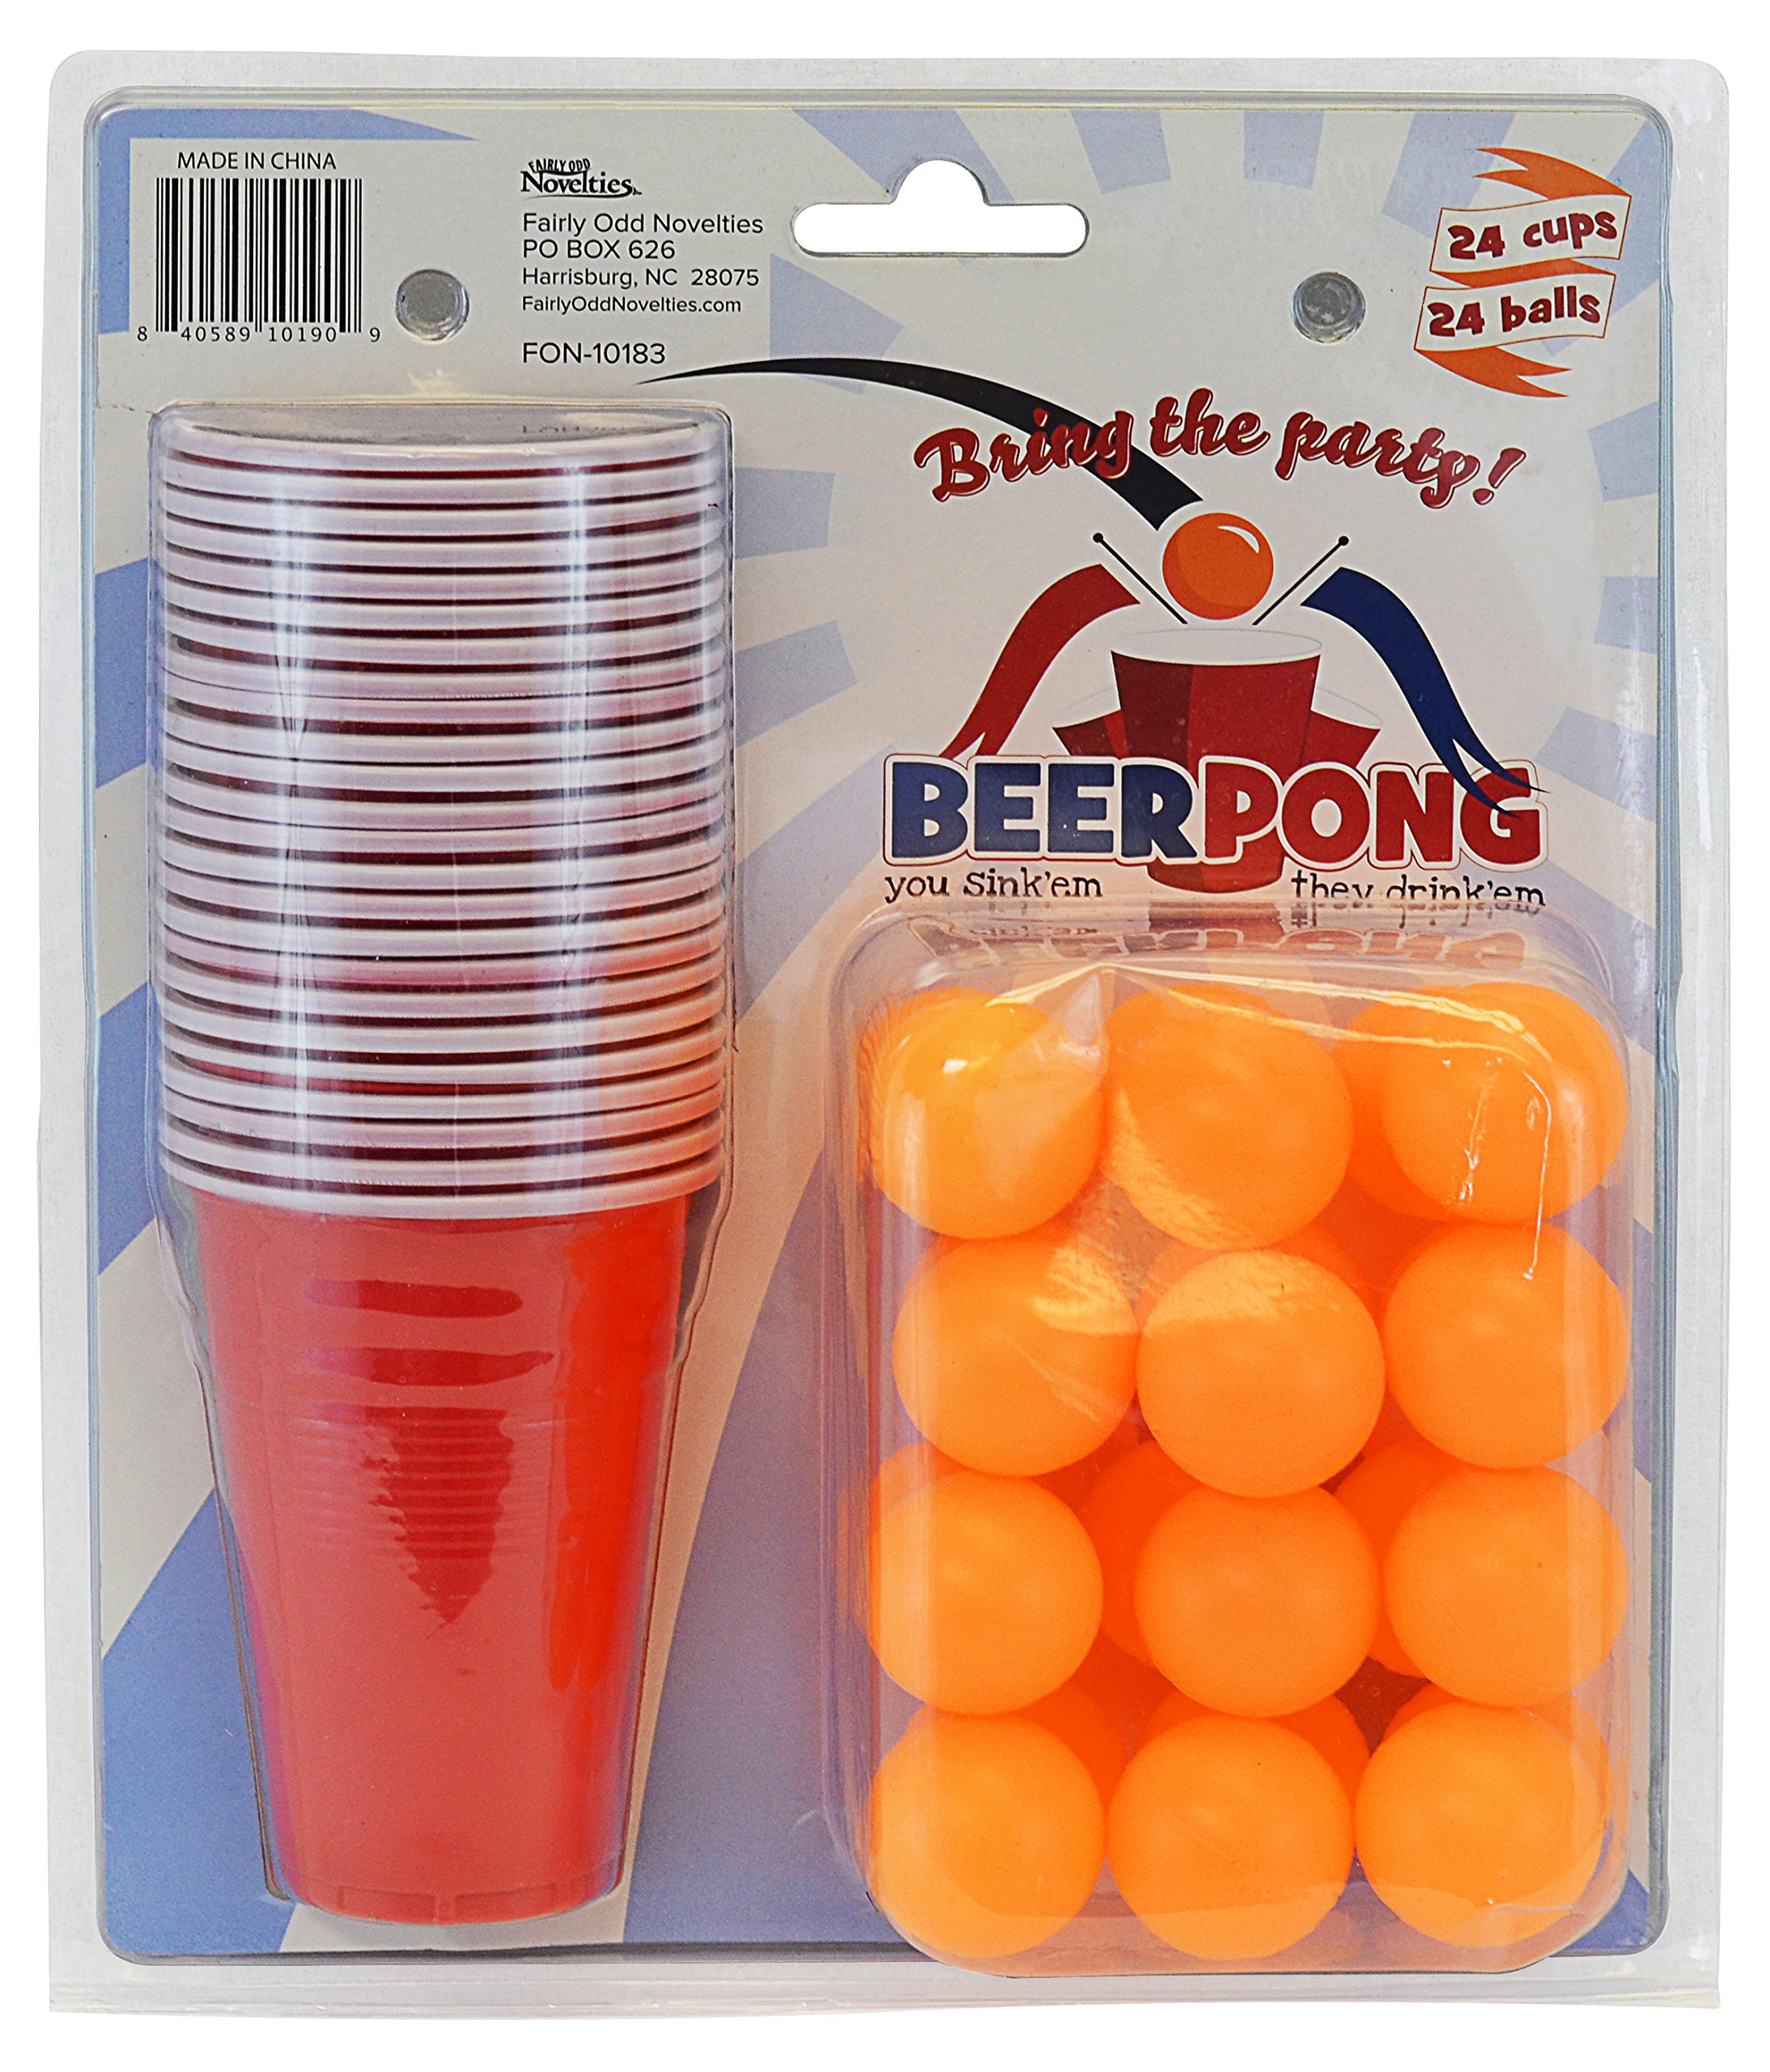 Fairly Odd Novelties Beer Pong Set, 24 Red Cups and Ping Pong Balls.